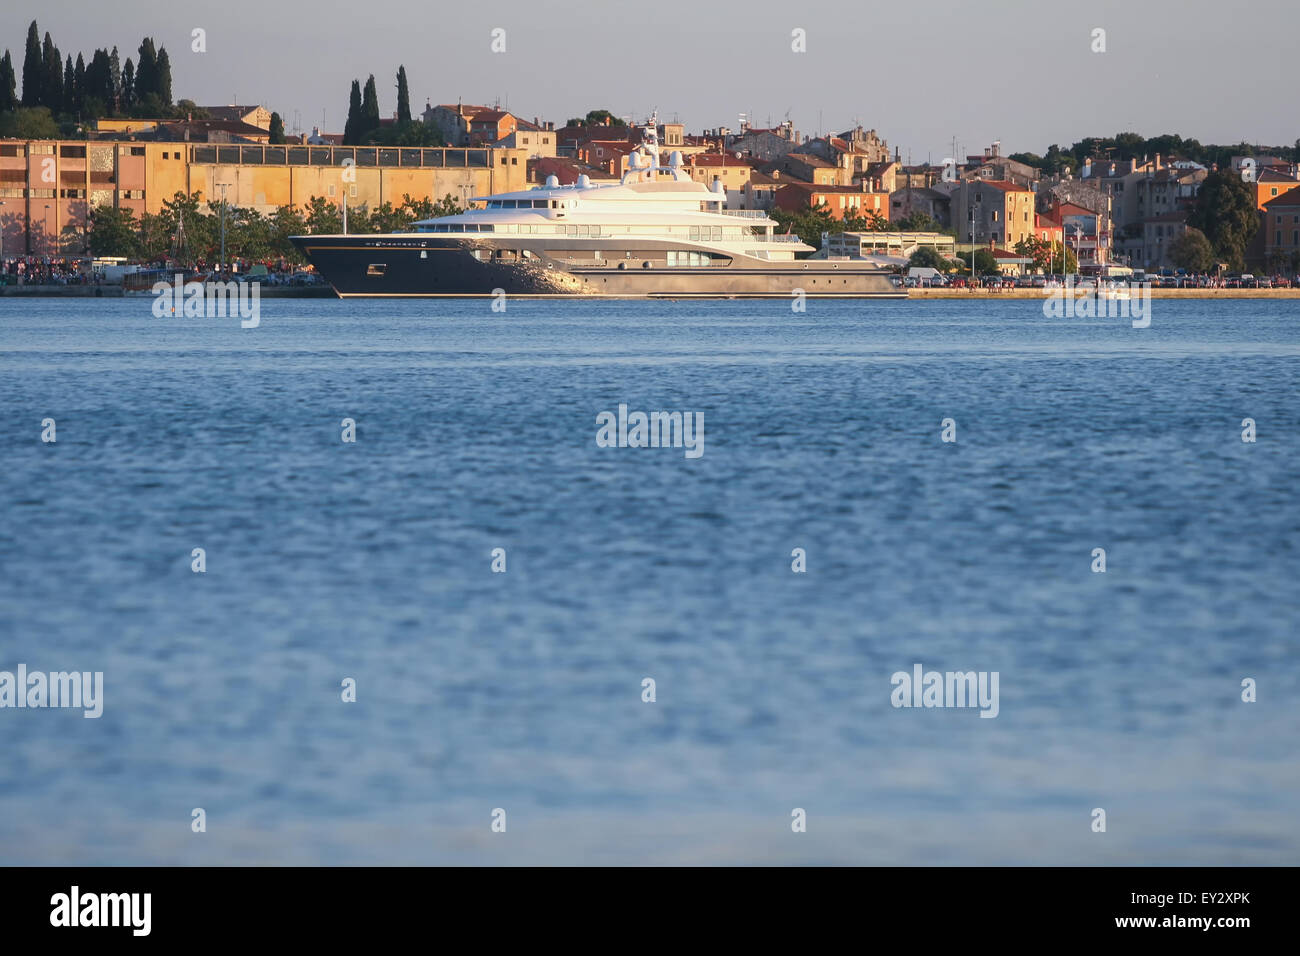 A mega yacht anchored at the dock in Rovinj, Croatia. - Stock Image